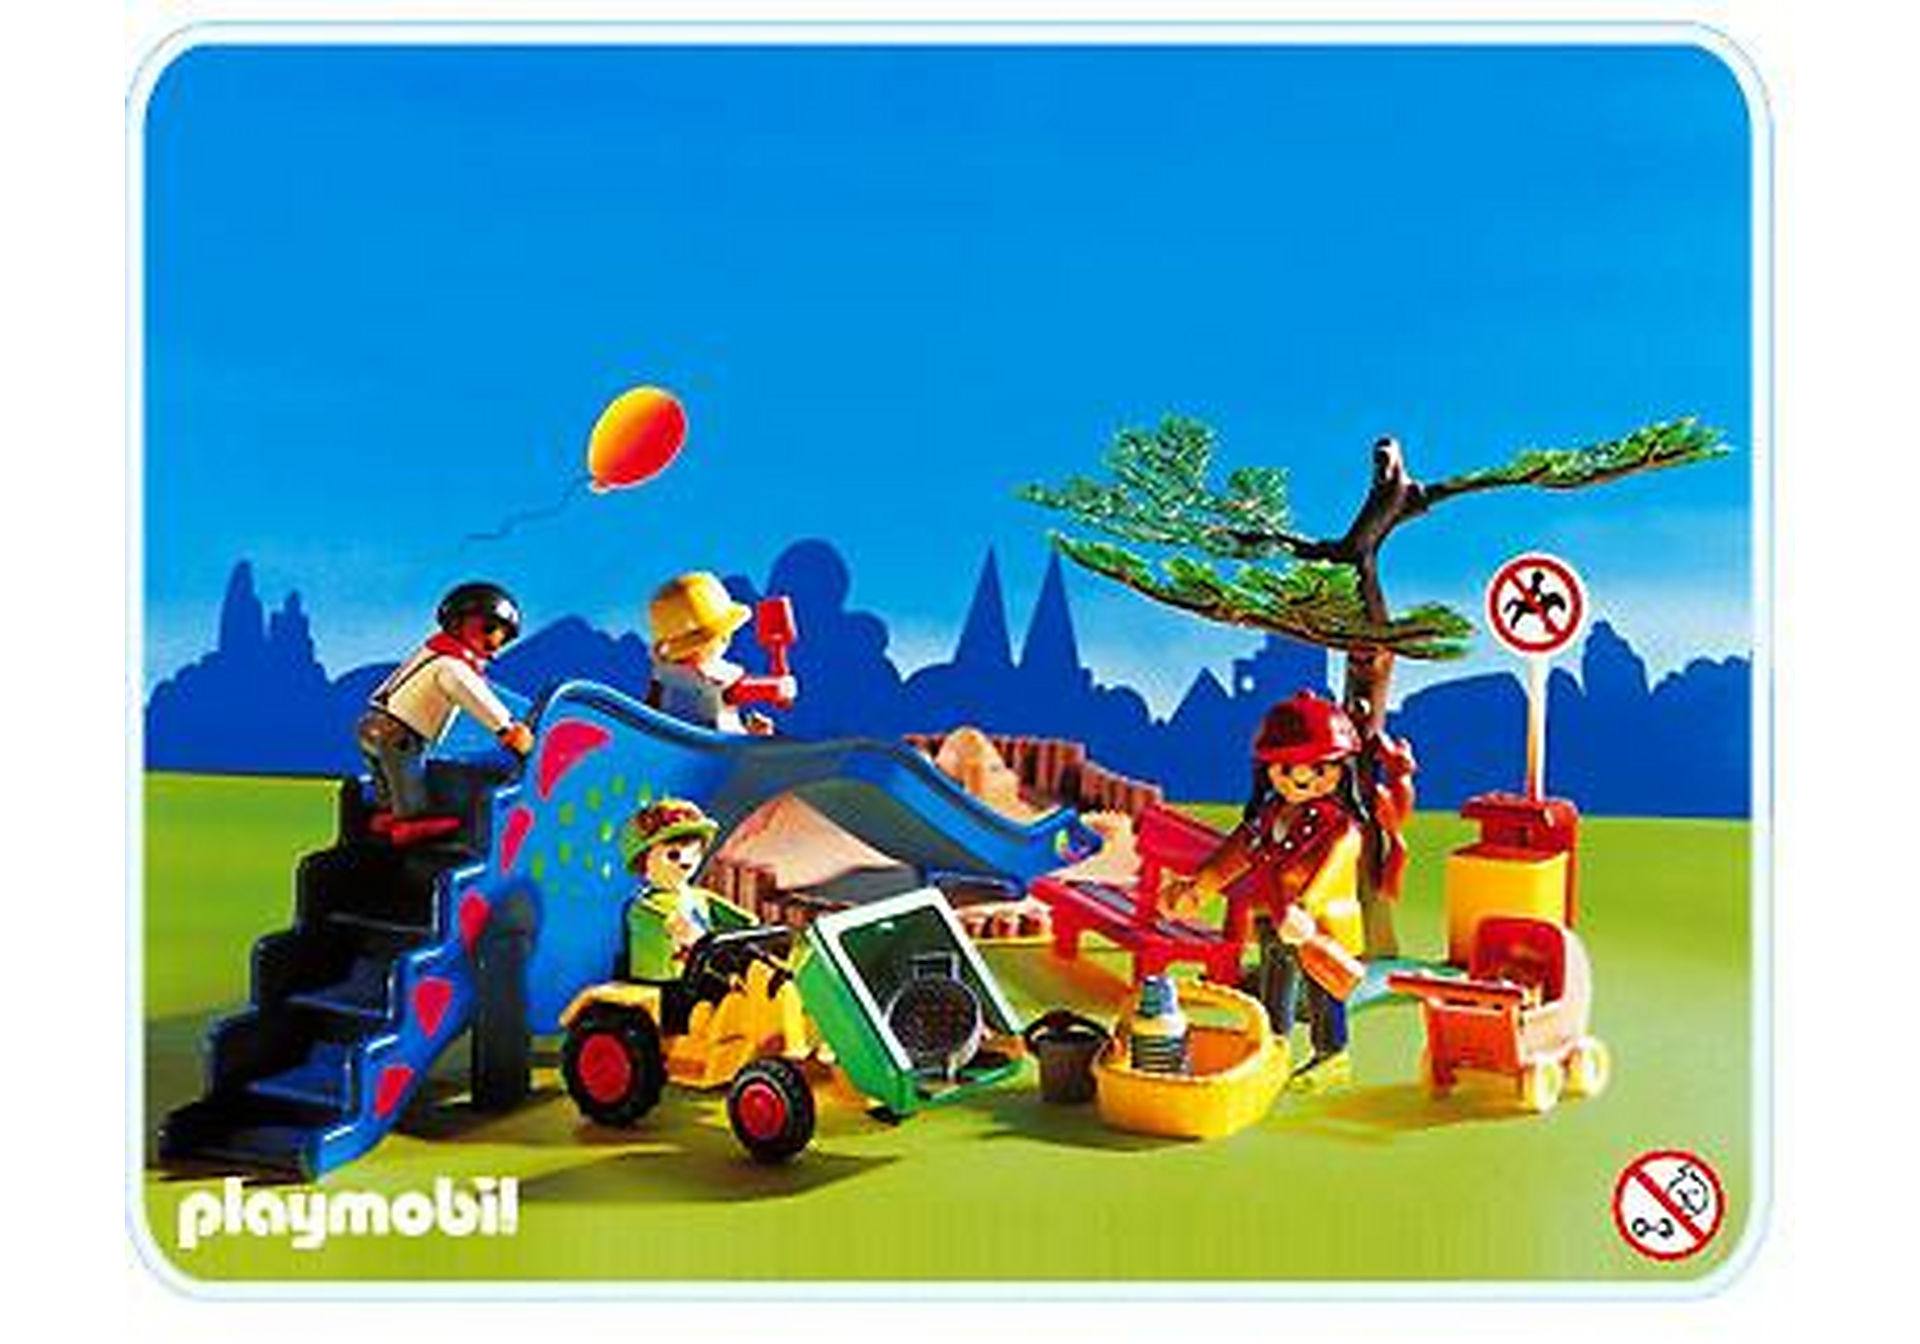 http://media.playmobil.com/i/playmobil/3822-A_product_detail/Kinderspielplatz